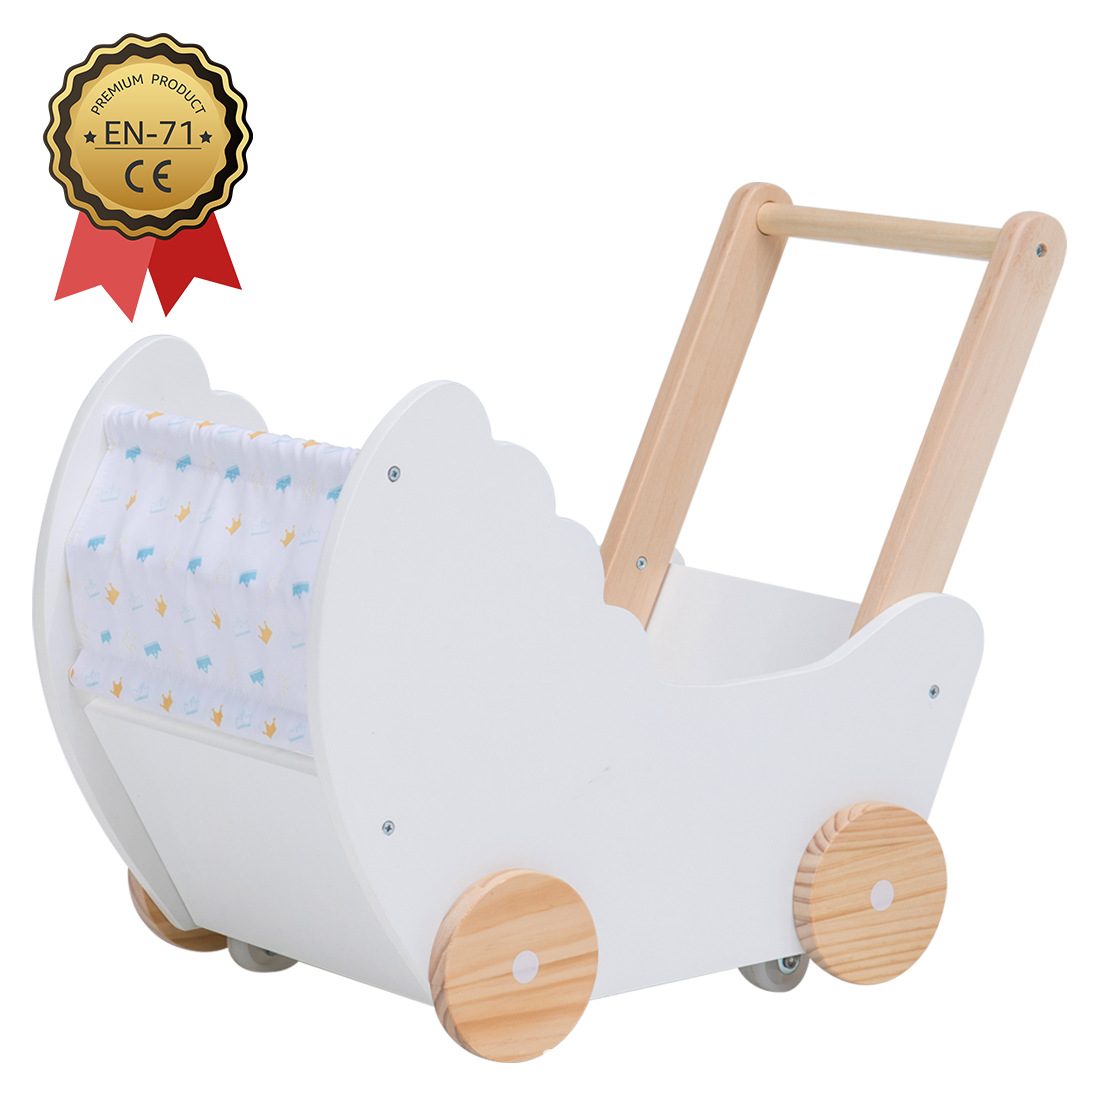 MDF Baby Learning Walker Wooden Toys